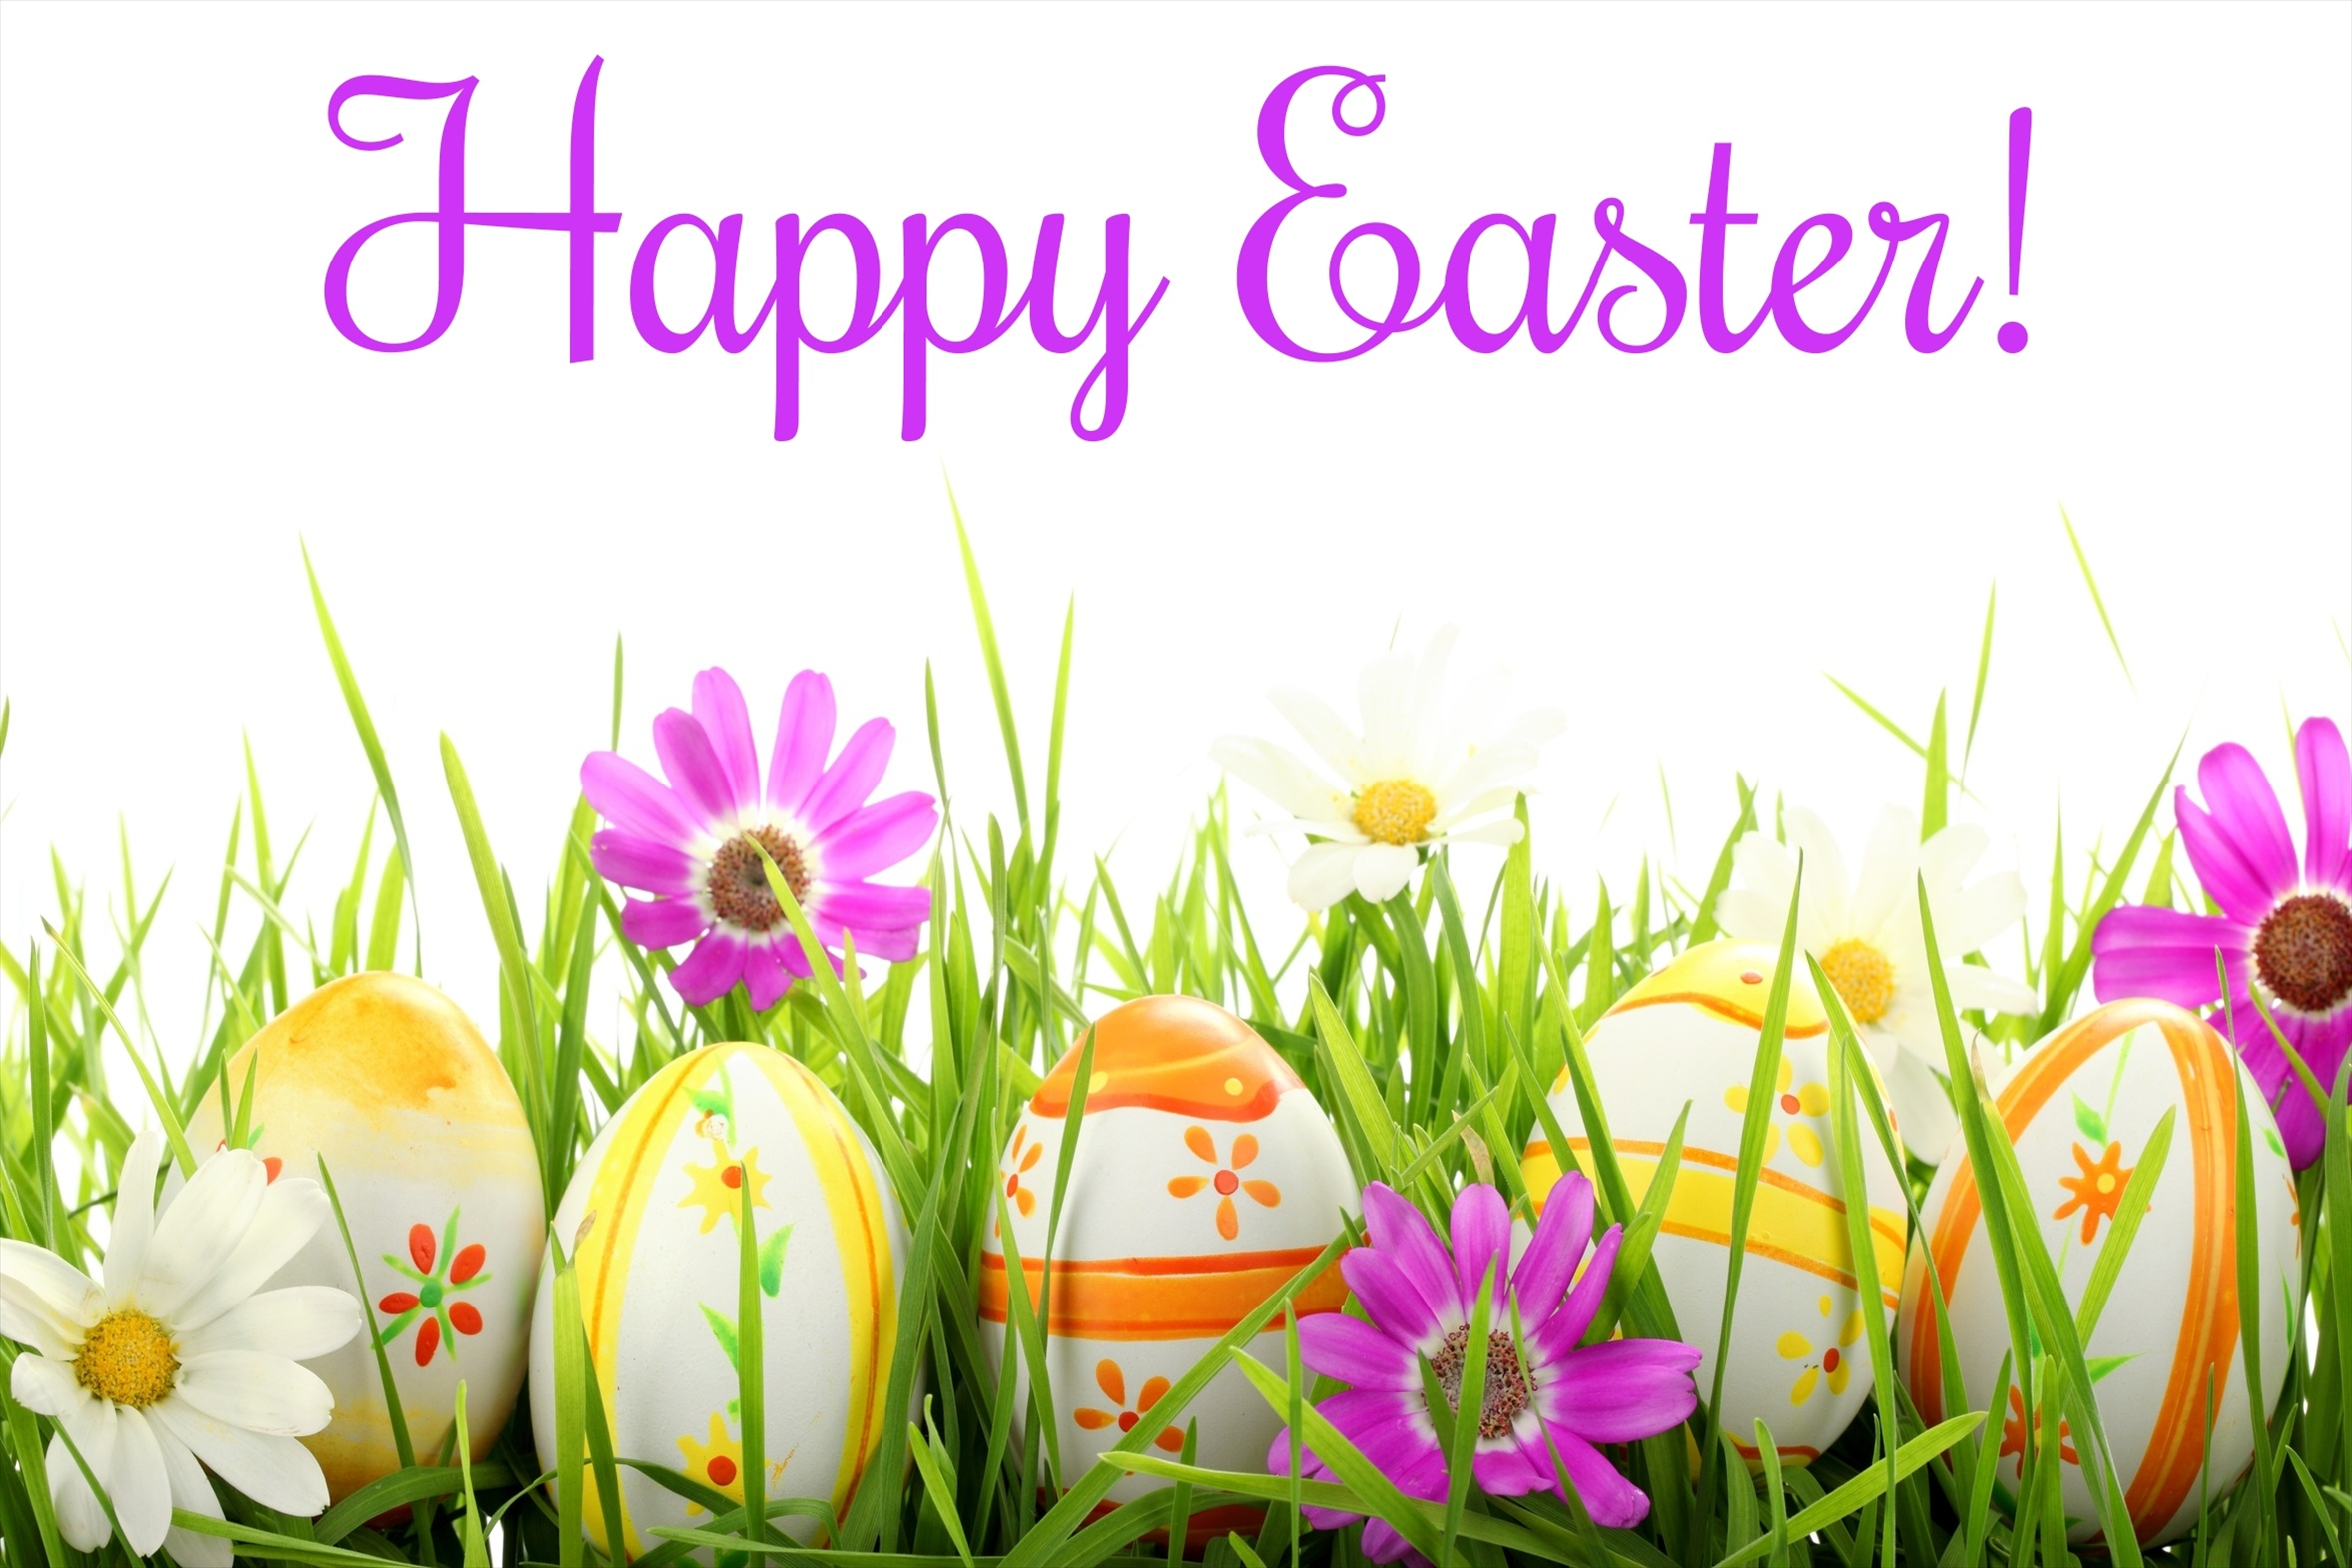 http://images6.fanpop.com/image/photos/34000000/Happy-Easter-All-My-Fans-happy-easter-all-my-fans-34039483-2356-1571.jpg